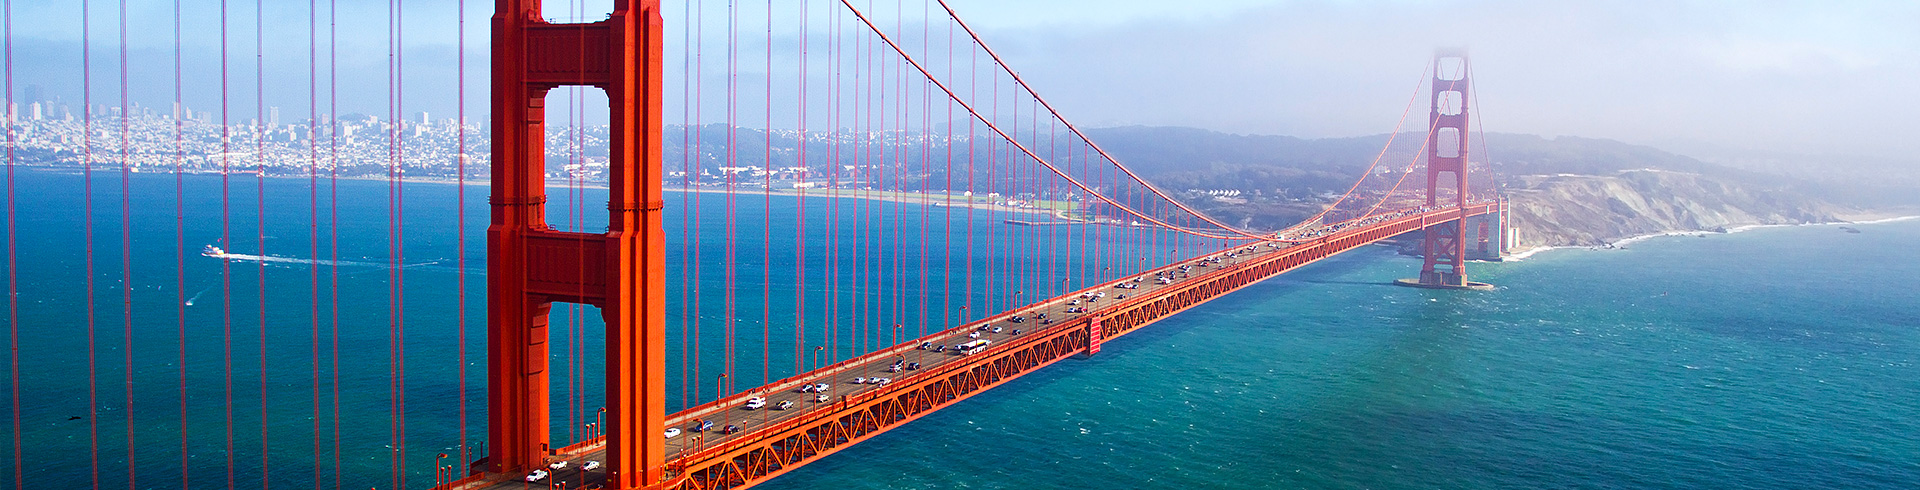 Discounted flight tickets to San Francisco - IFlyFirstClass